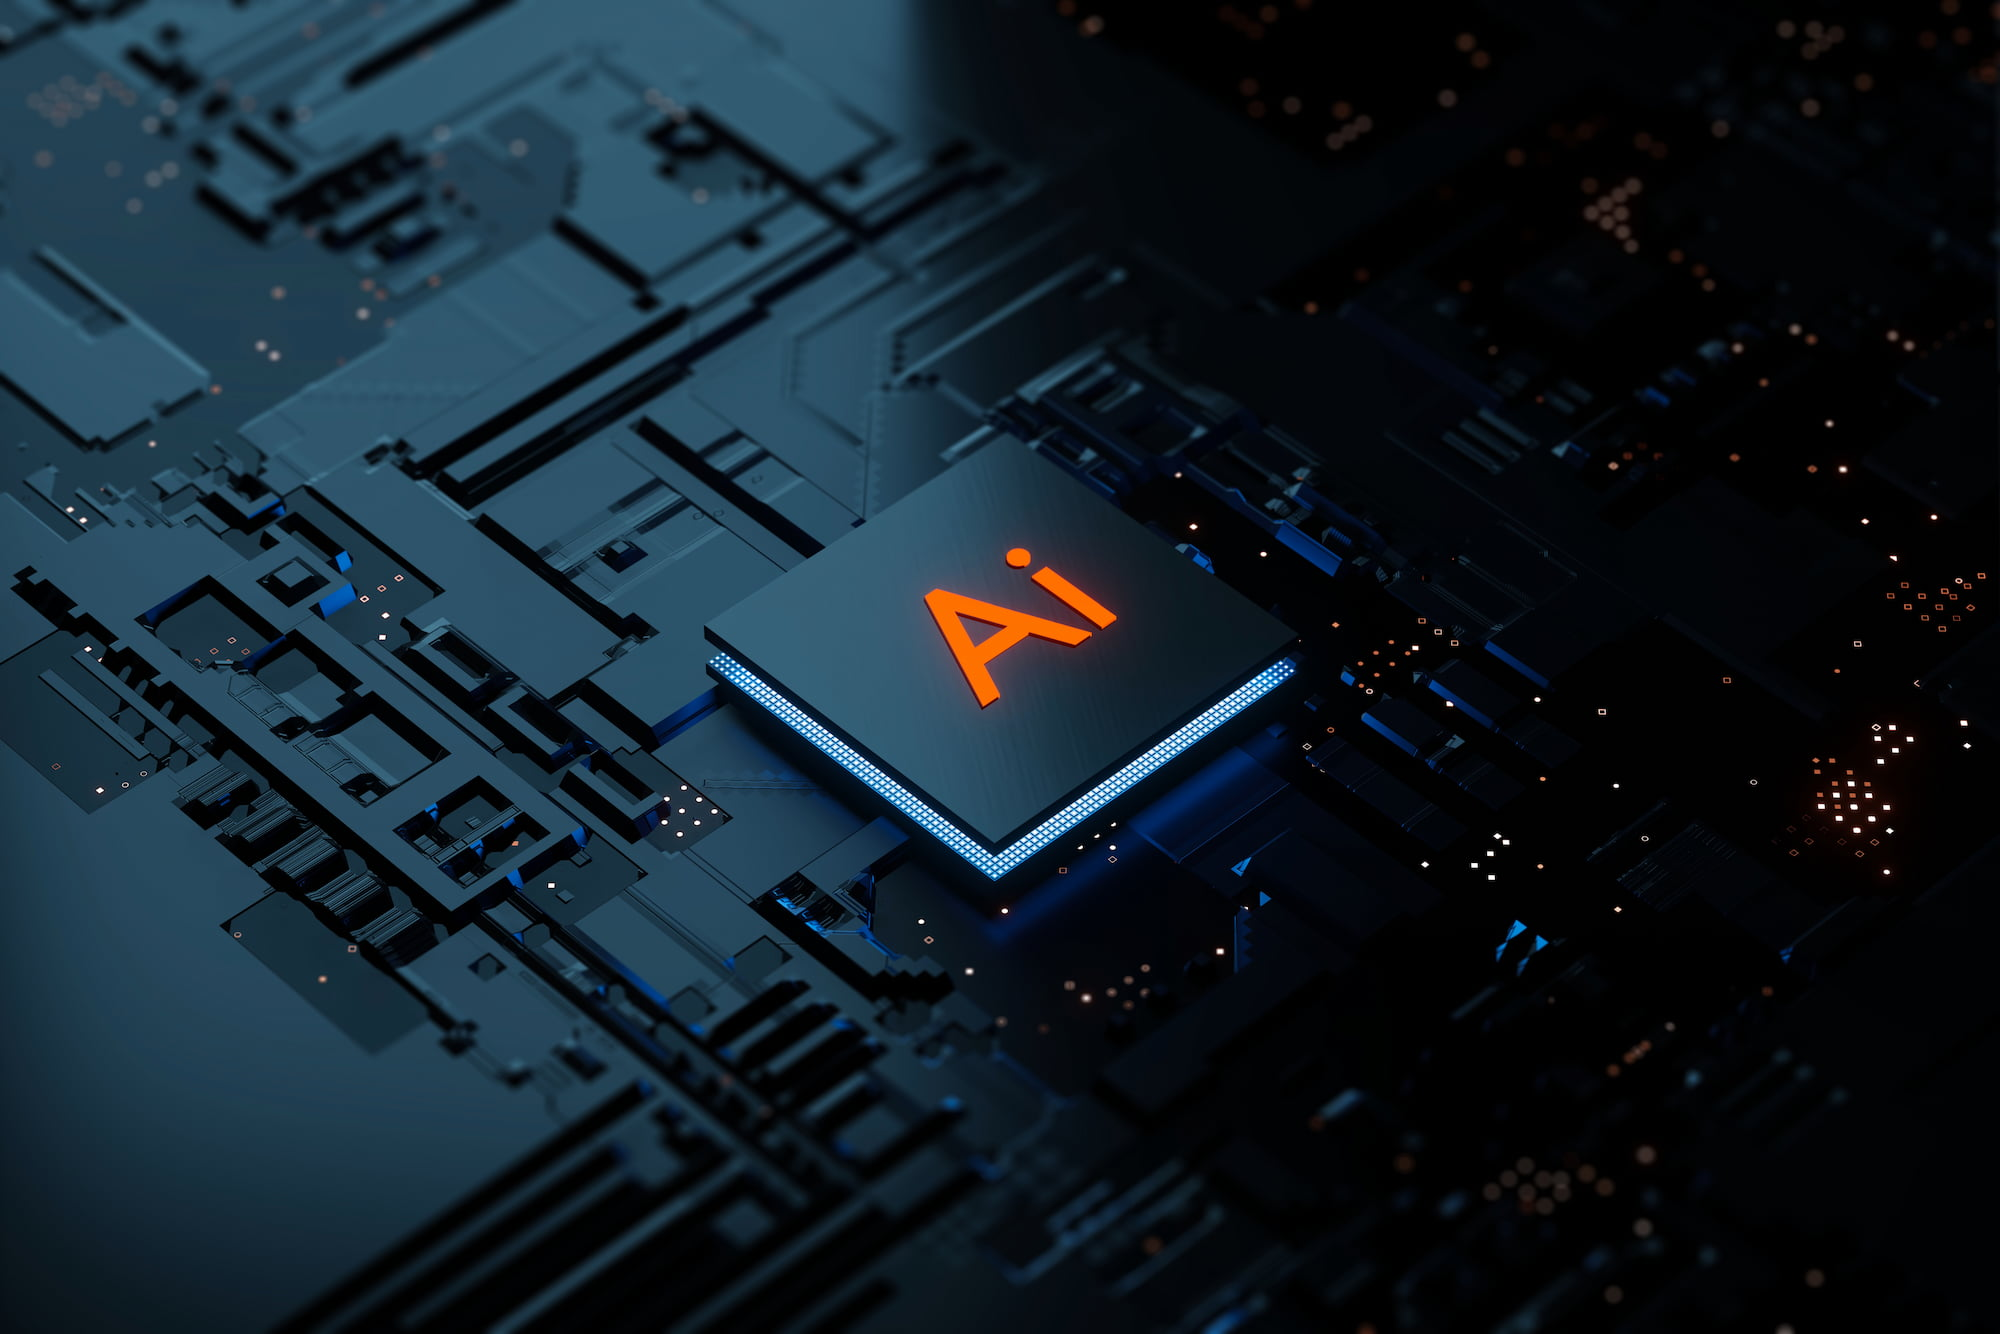 Ai chip cover image